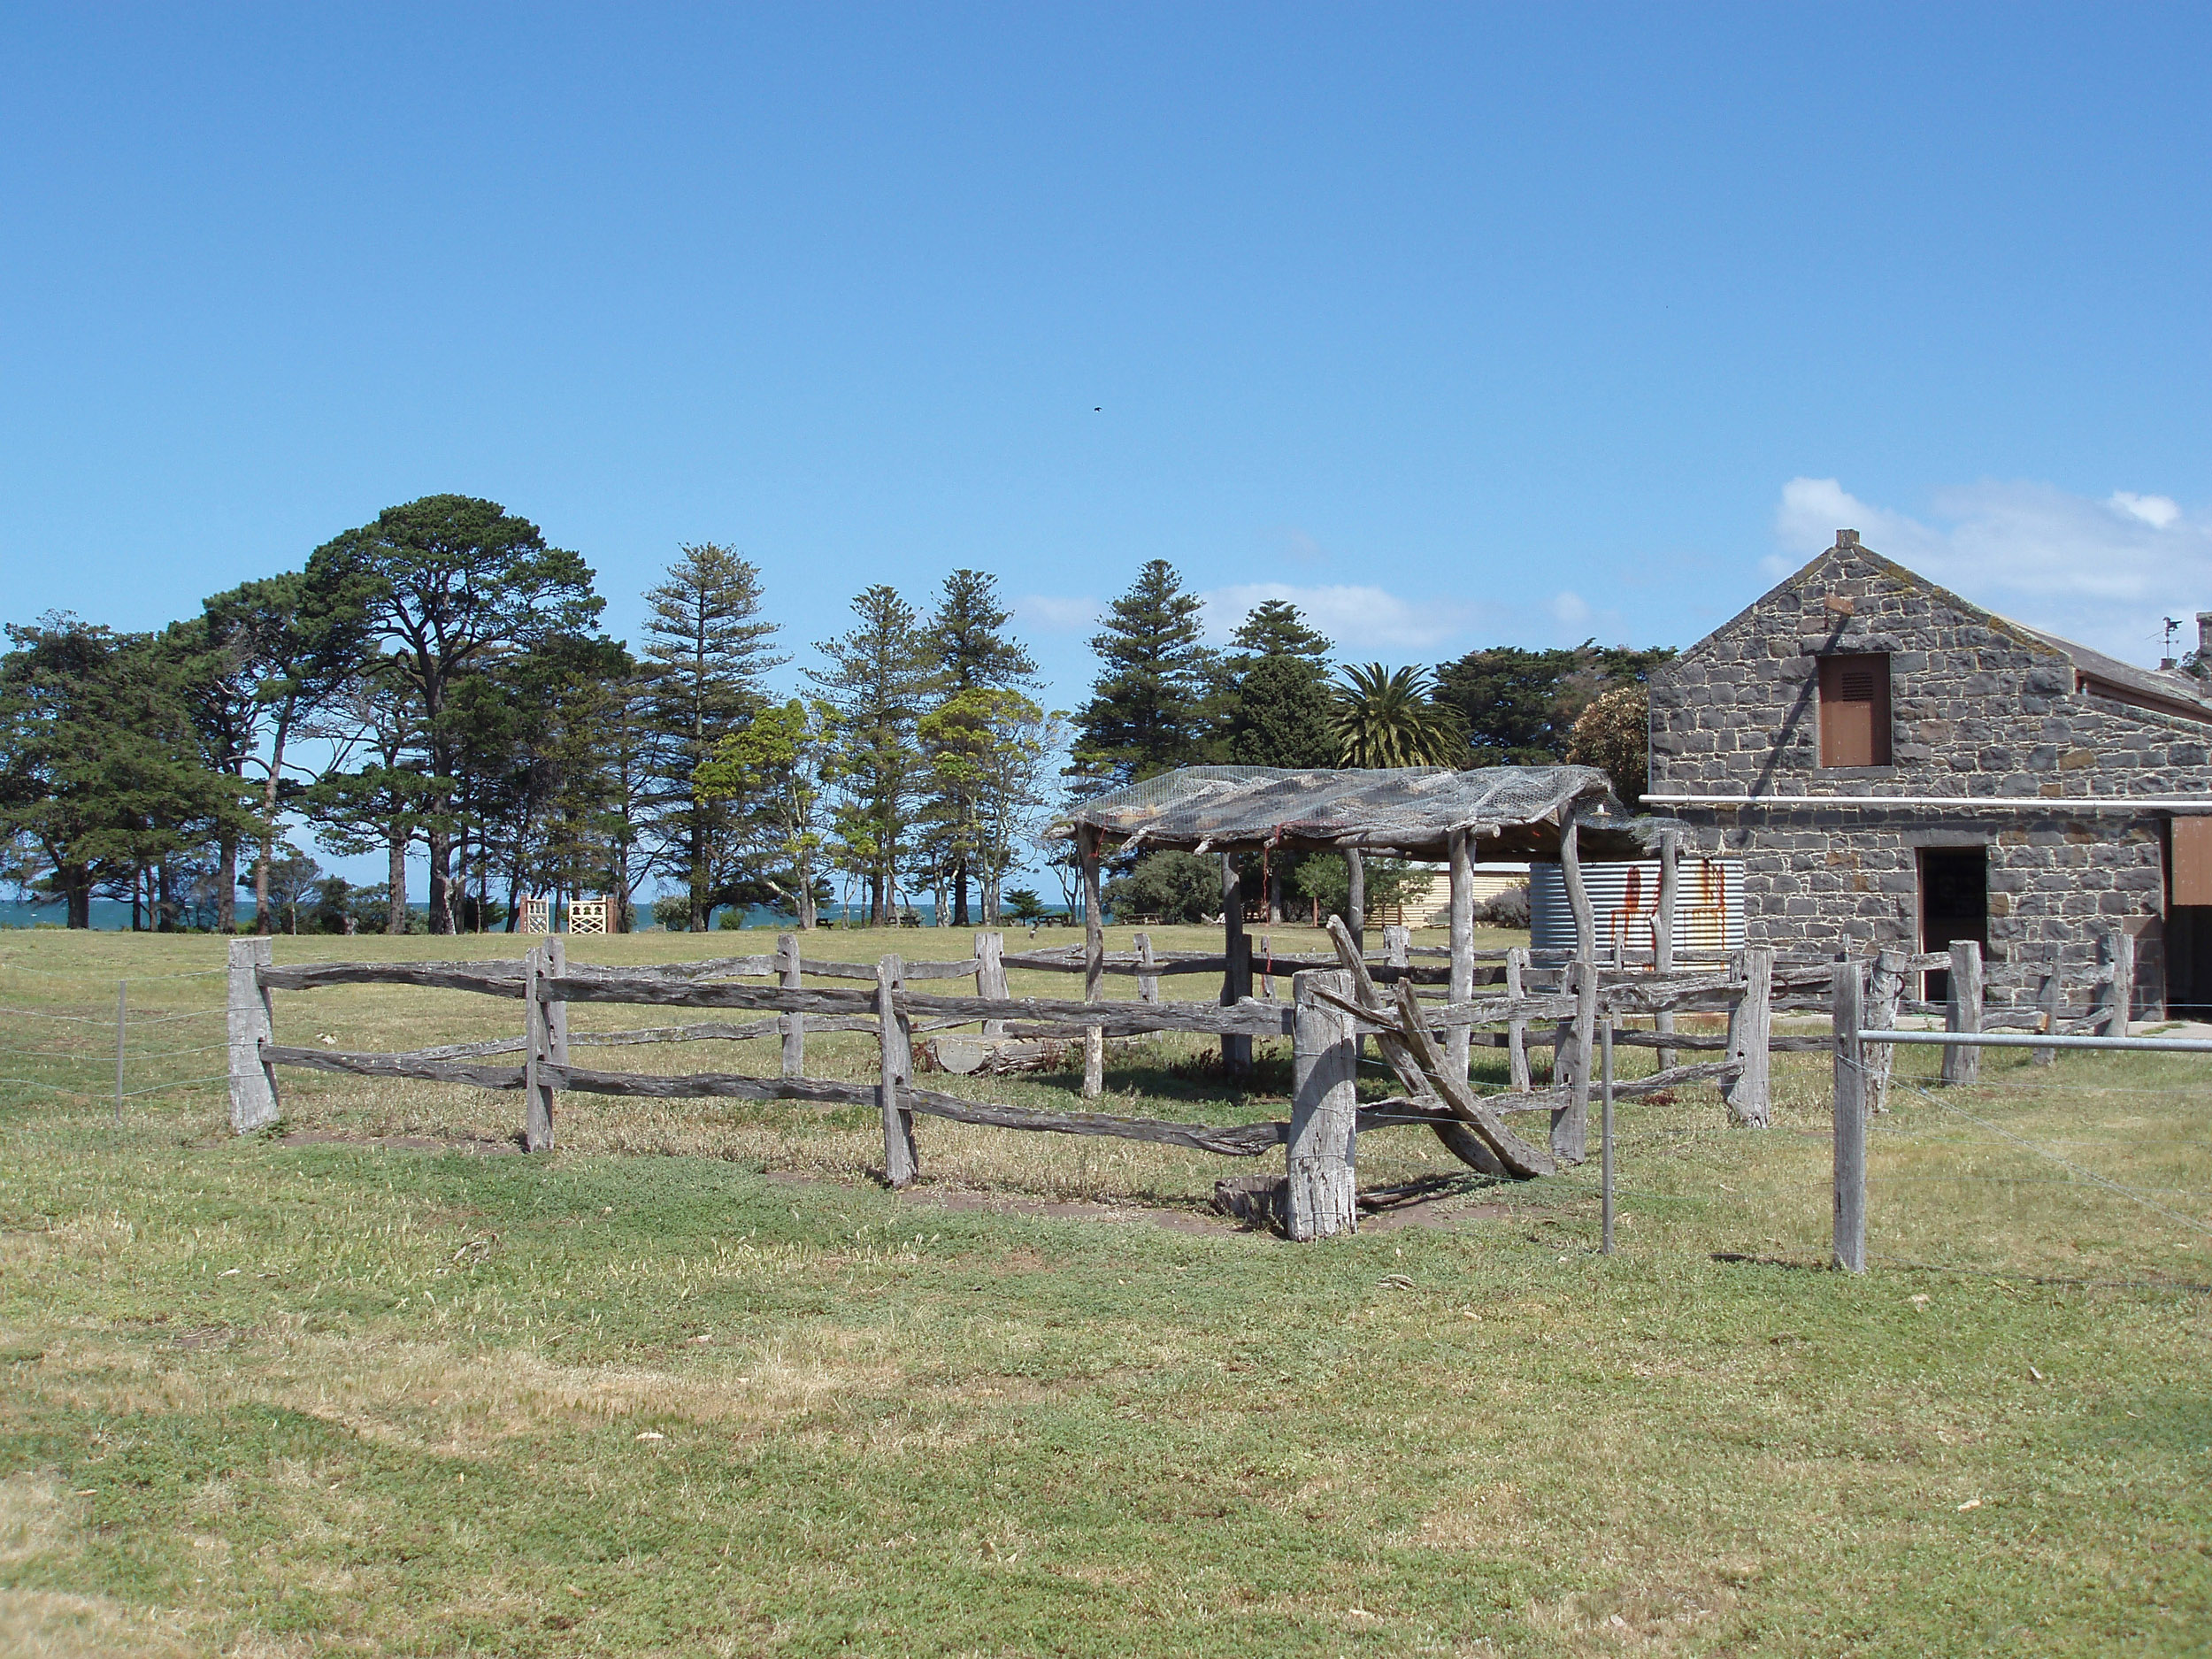 and old barn at the point cook homestead - not property released